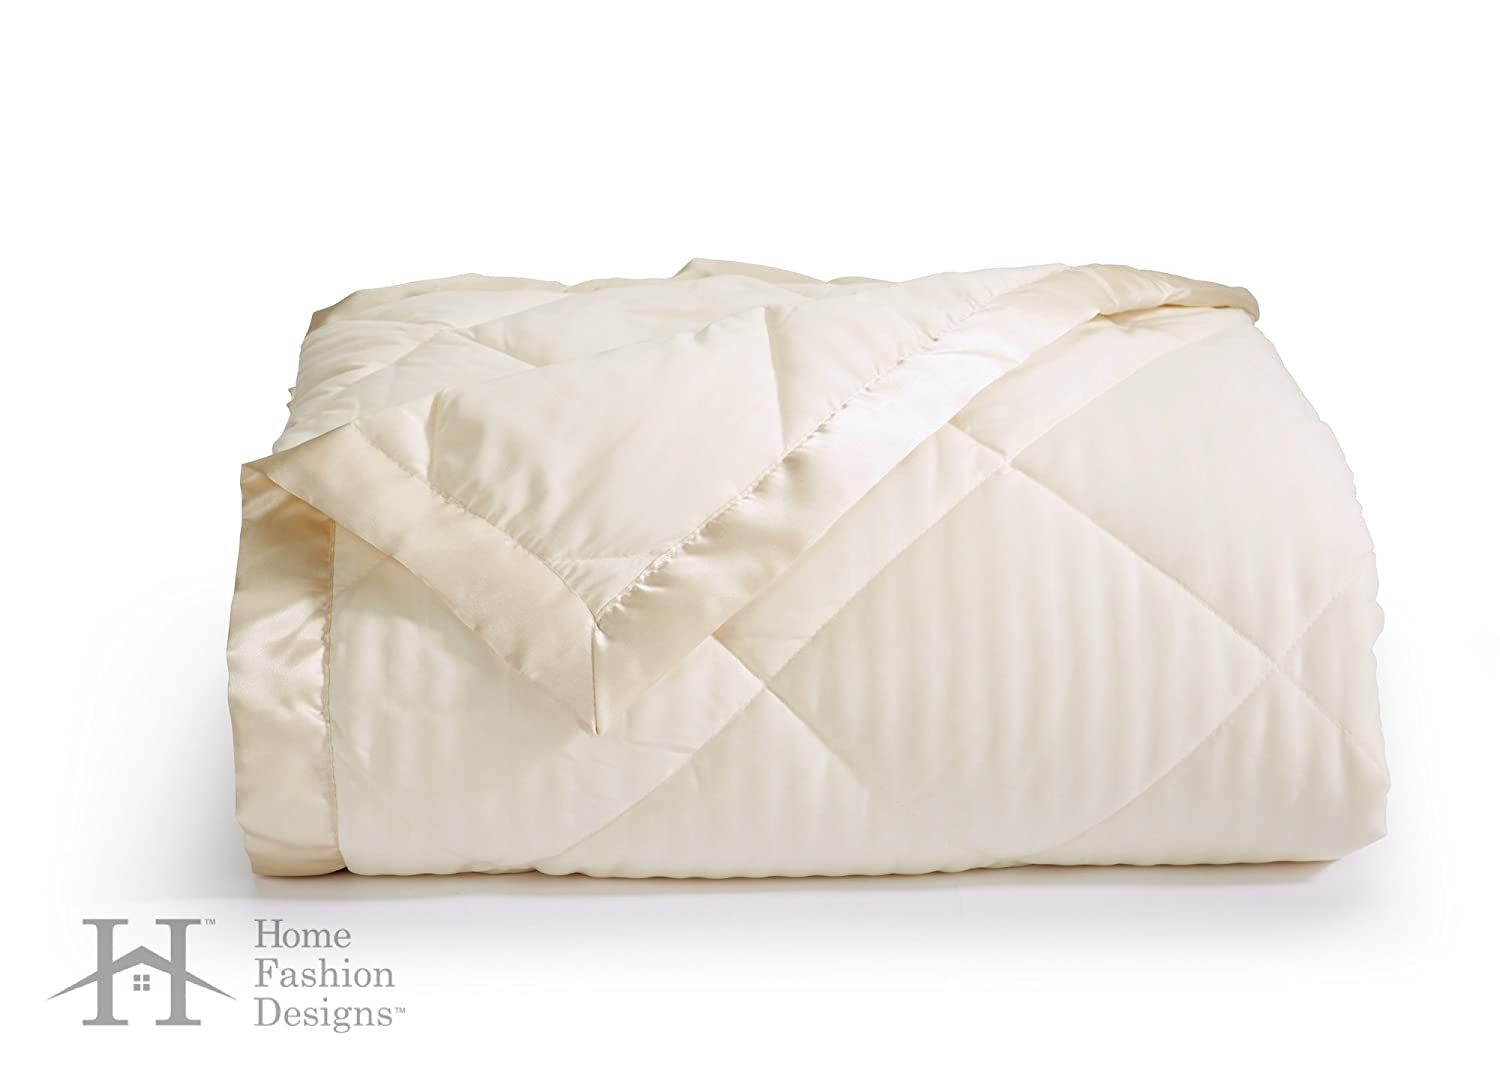 amazoncom romana collection luxury goose down alternative quilted blanket by home fashion designs brand fullqueen ivory home kitchen